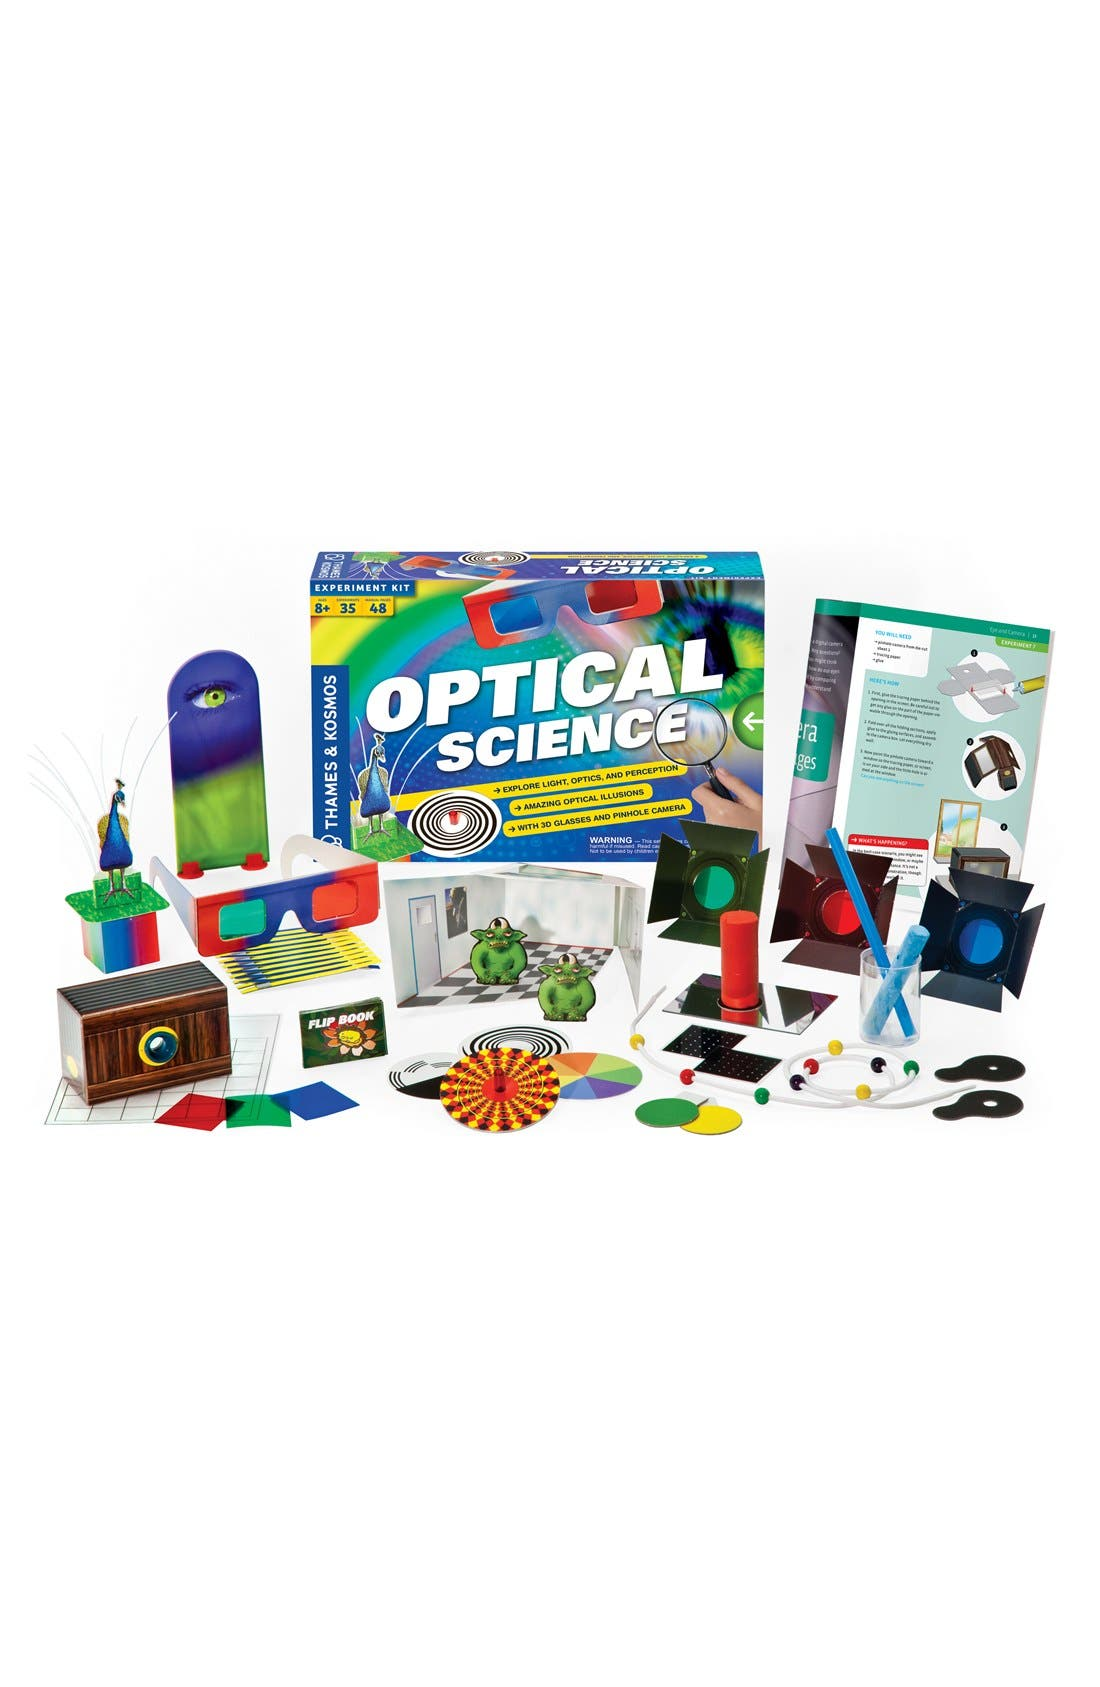 Thames & Kosmos 'Optical Science 2.0' Experiment Kit